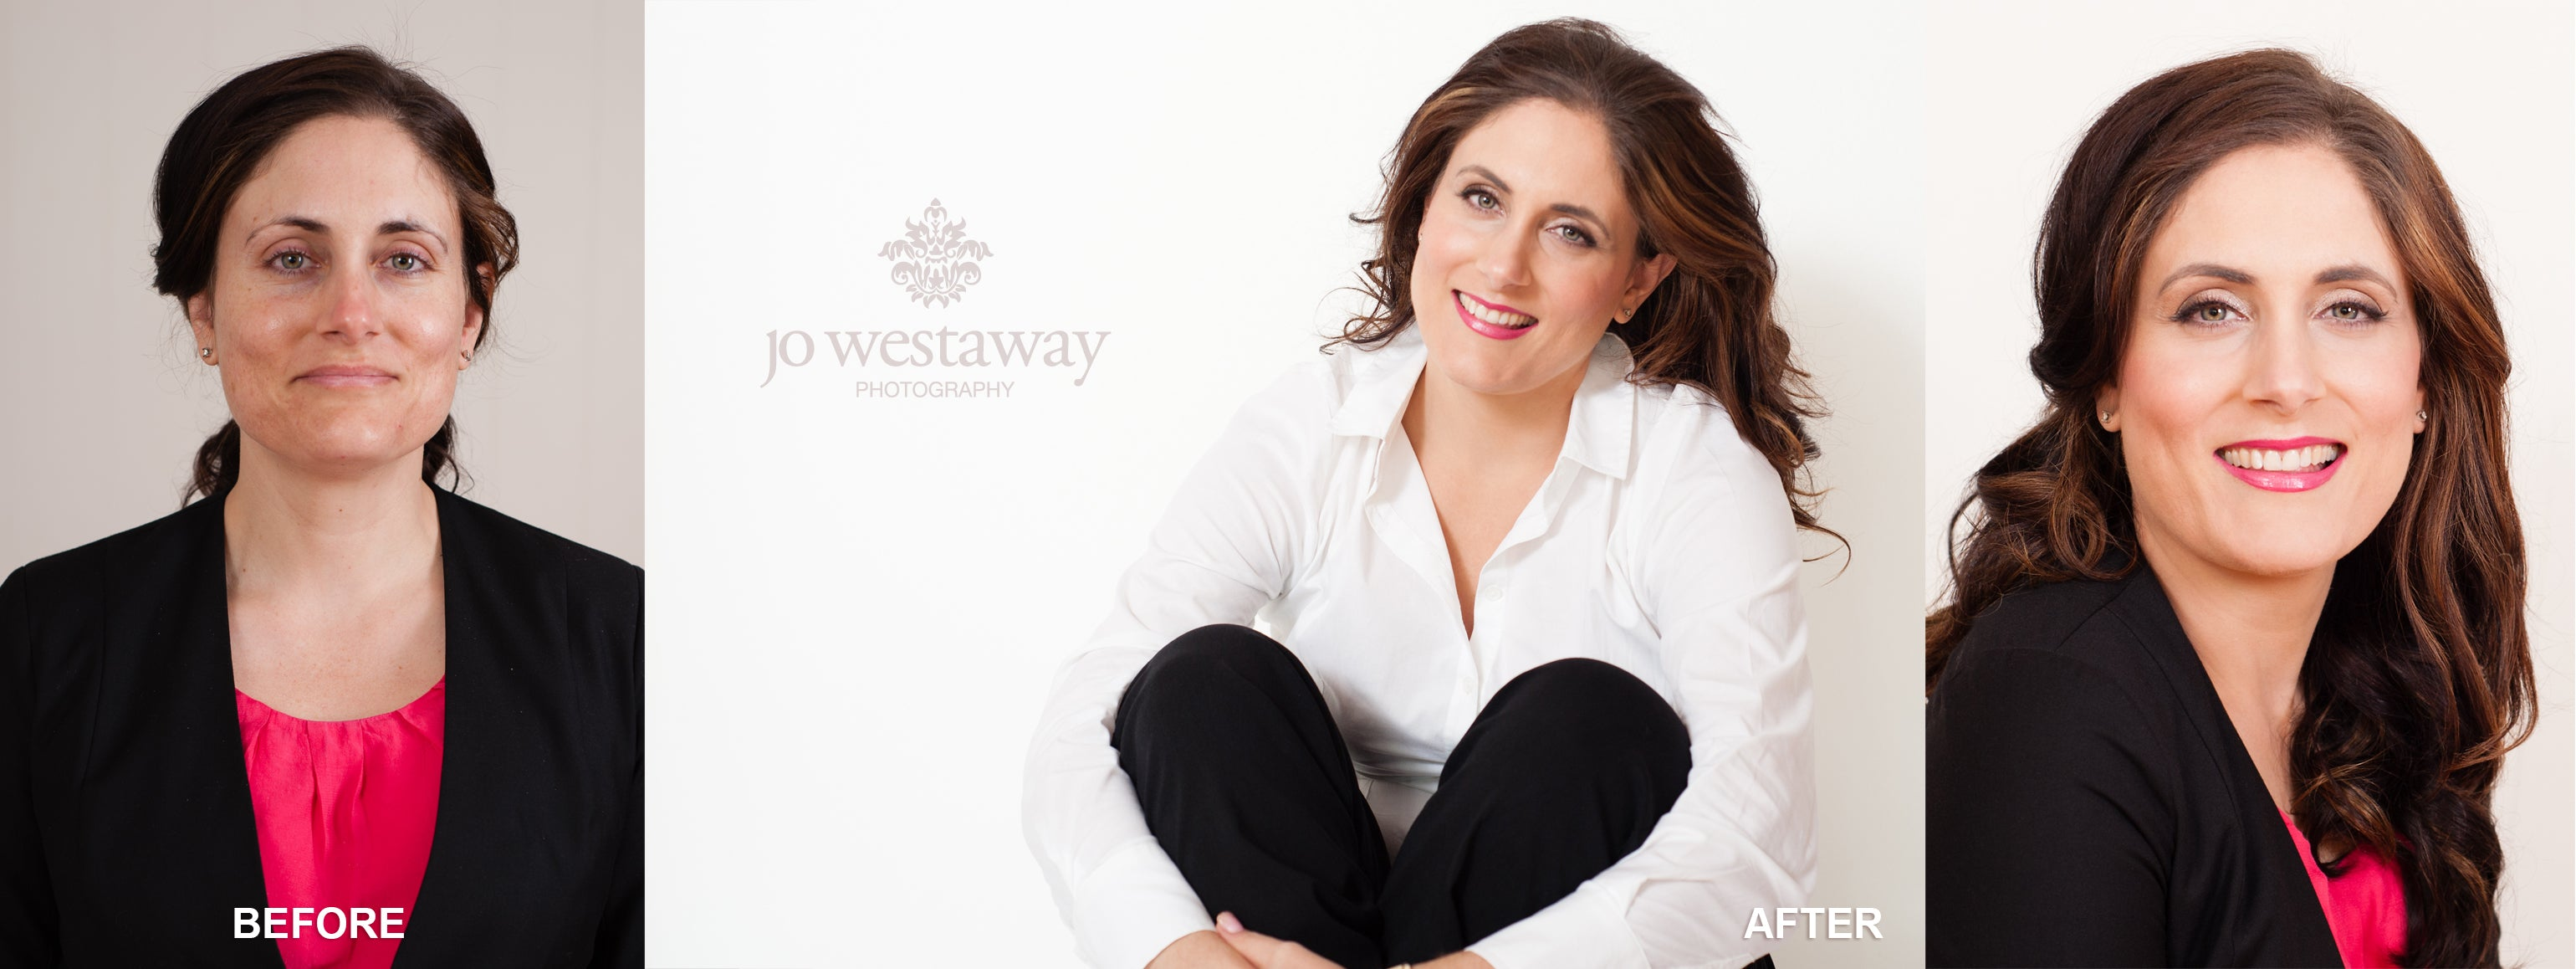 Before and after headshot photos - Jo Westaway Photography - brand portraits for business women